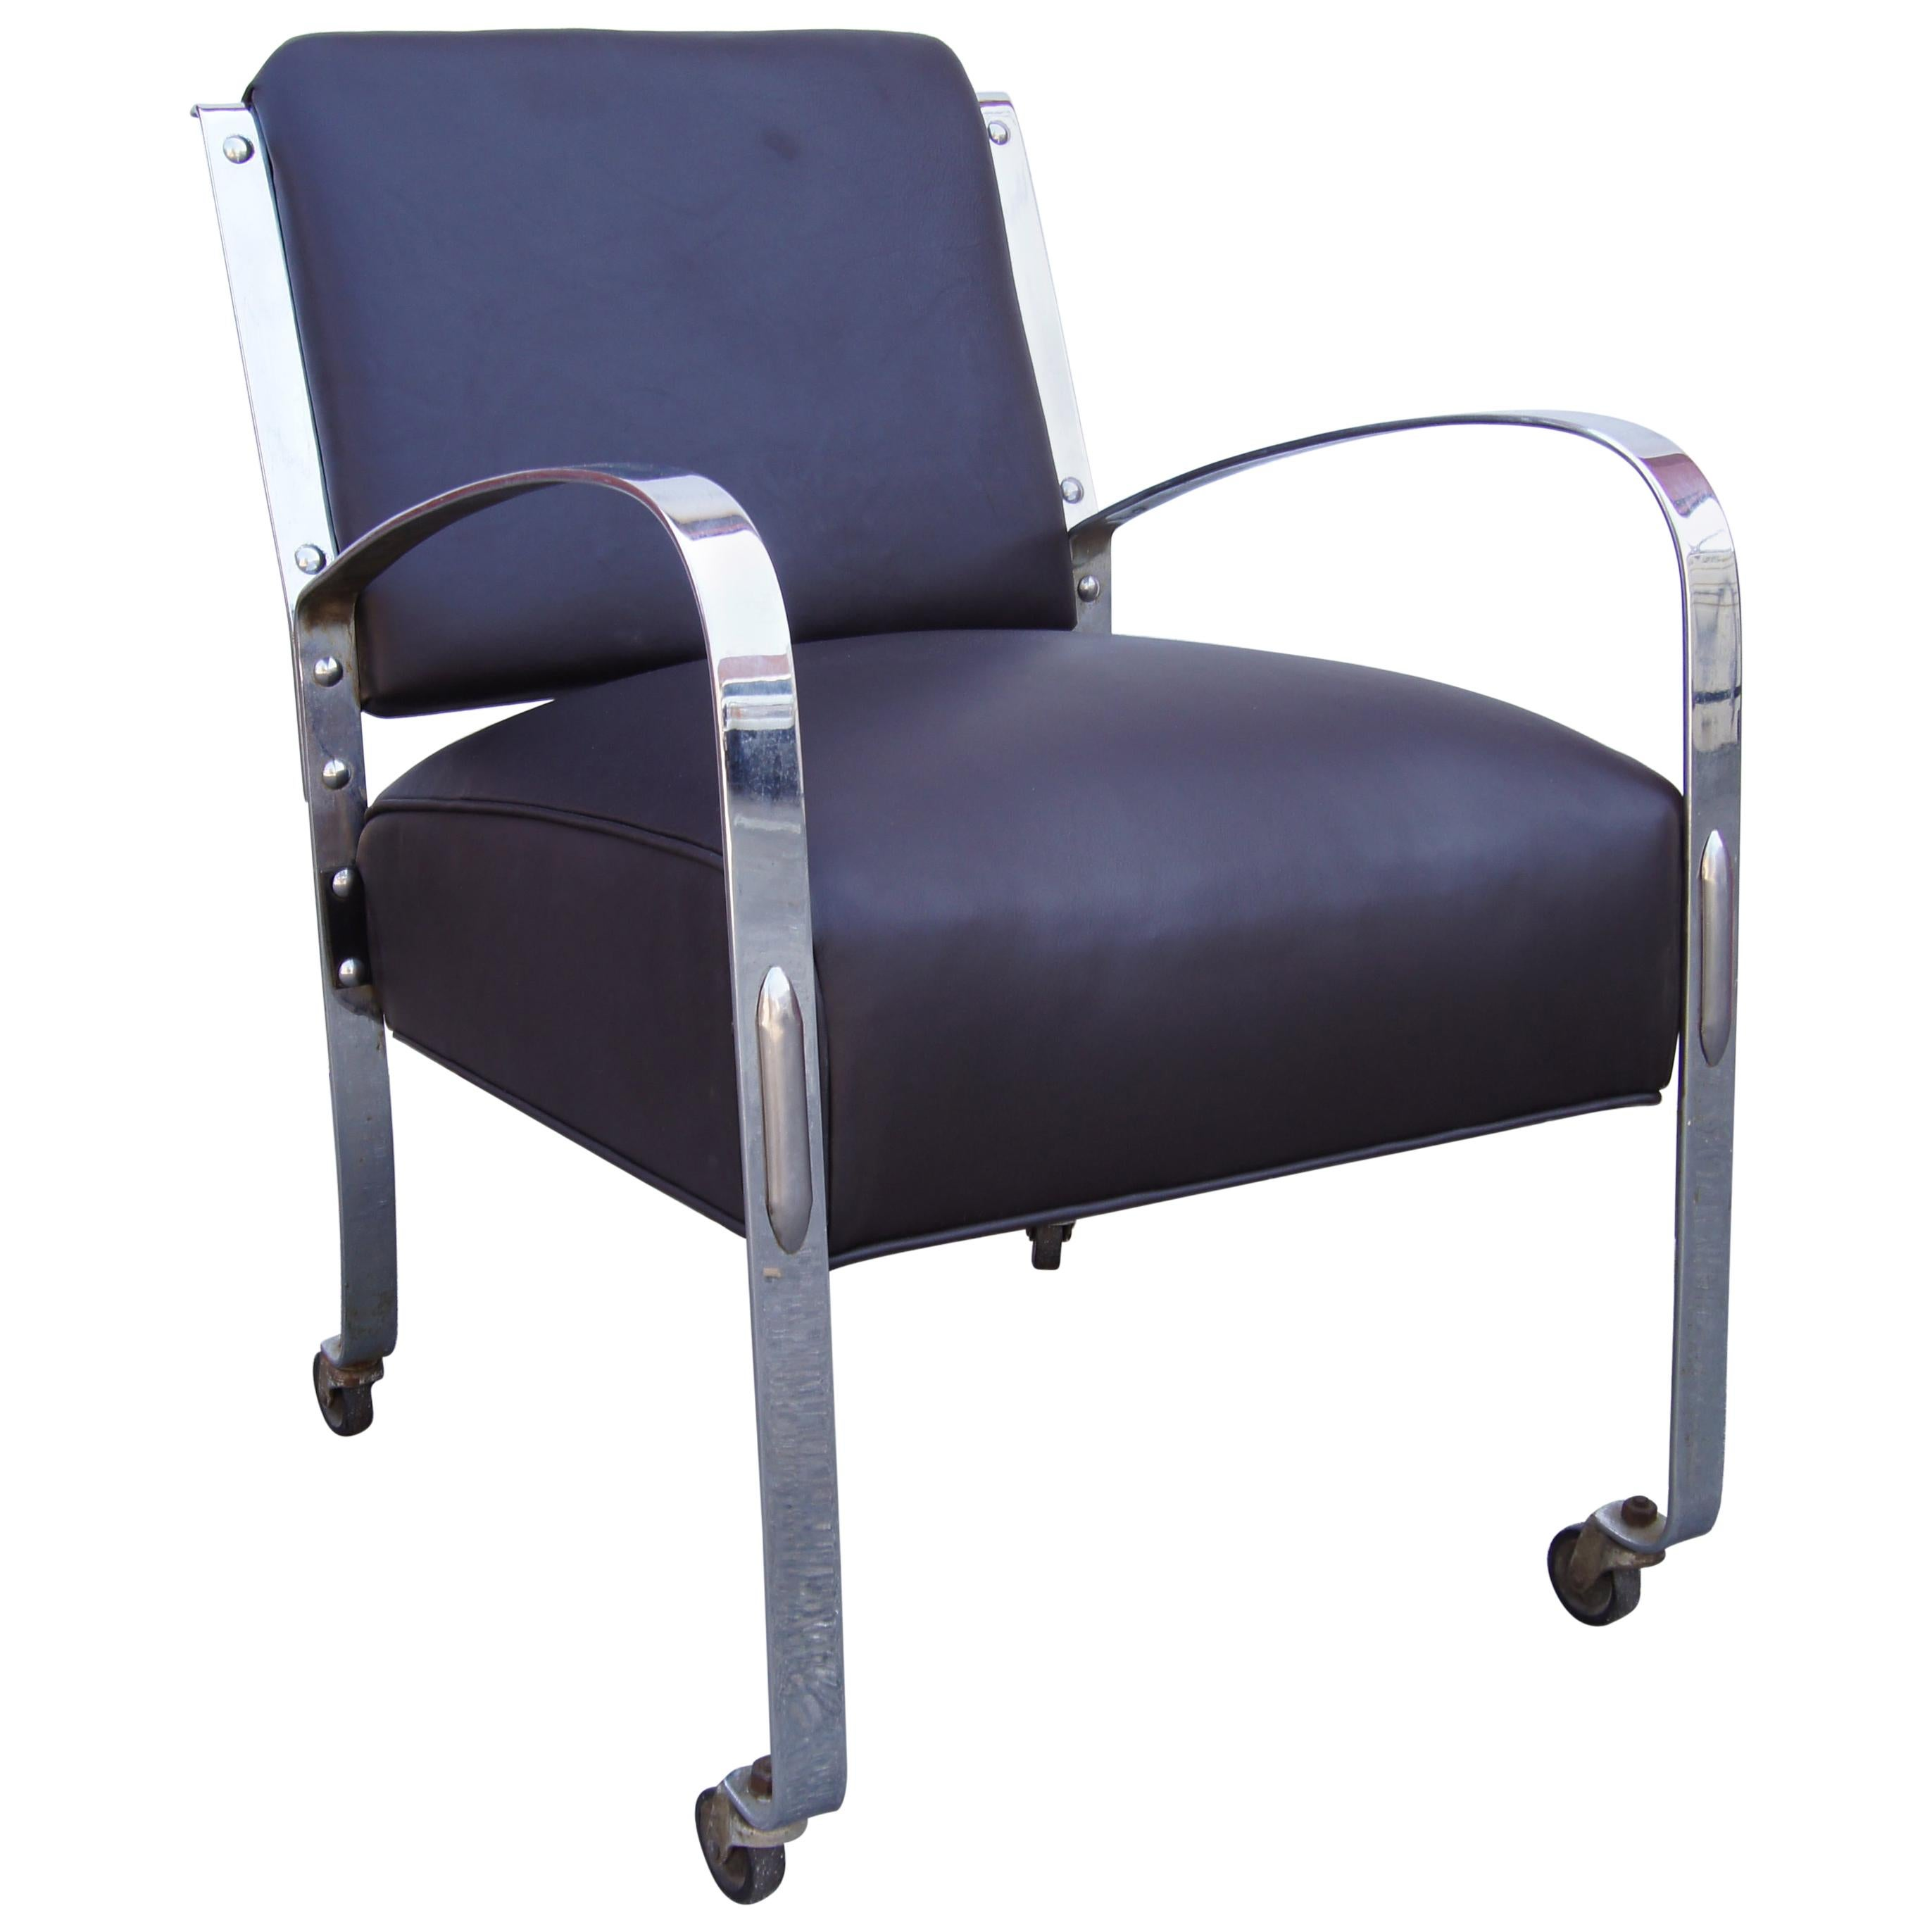 Chrome and Leather Armchair by McKay Furniture Company